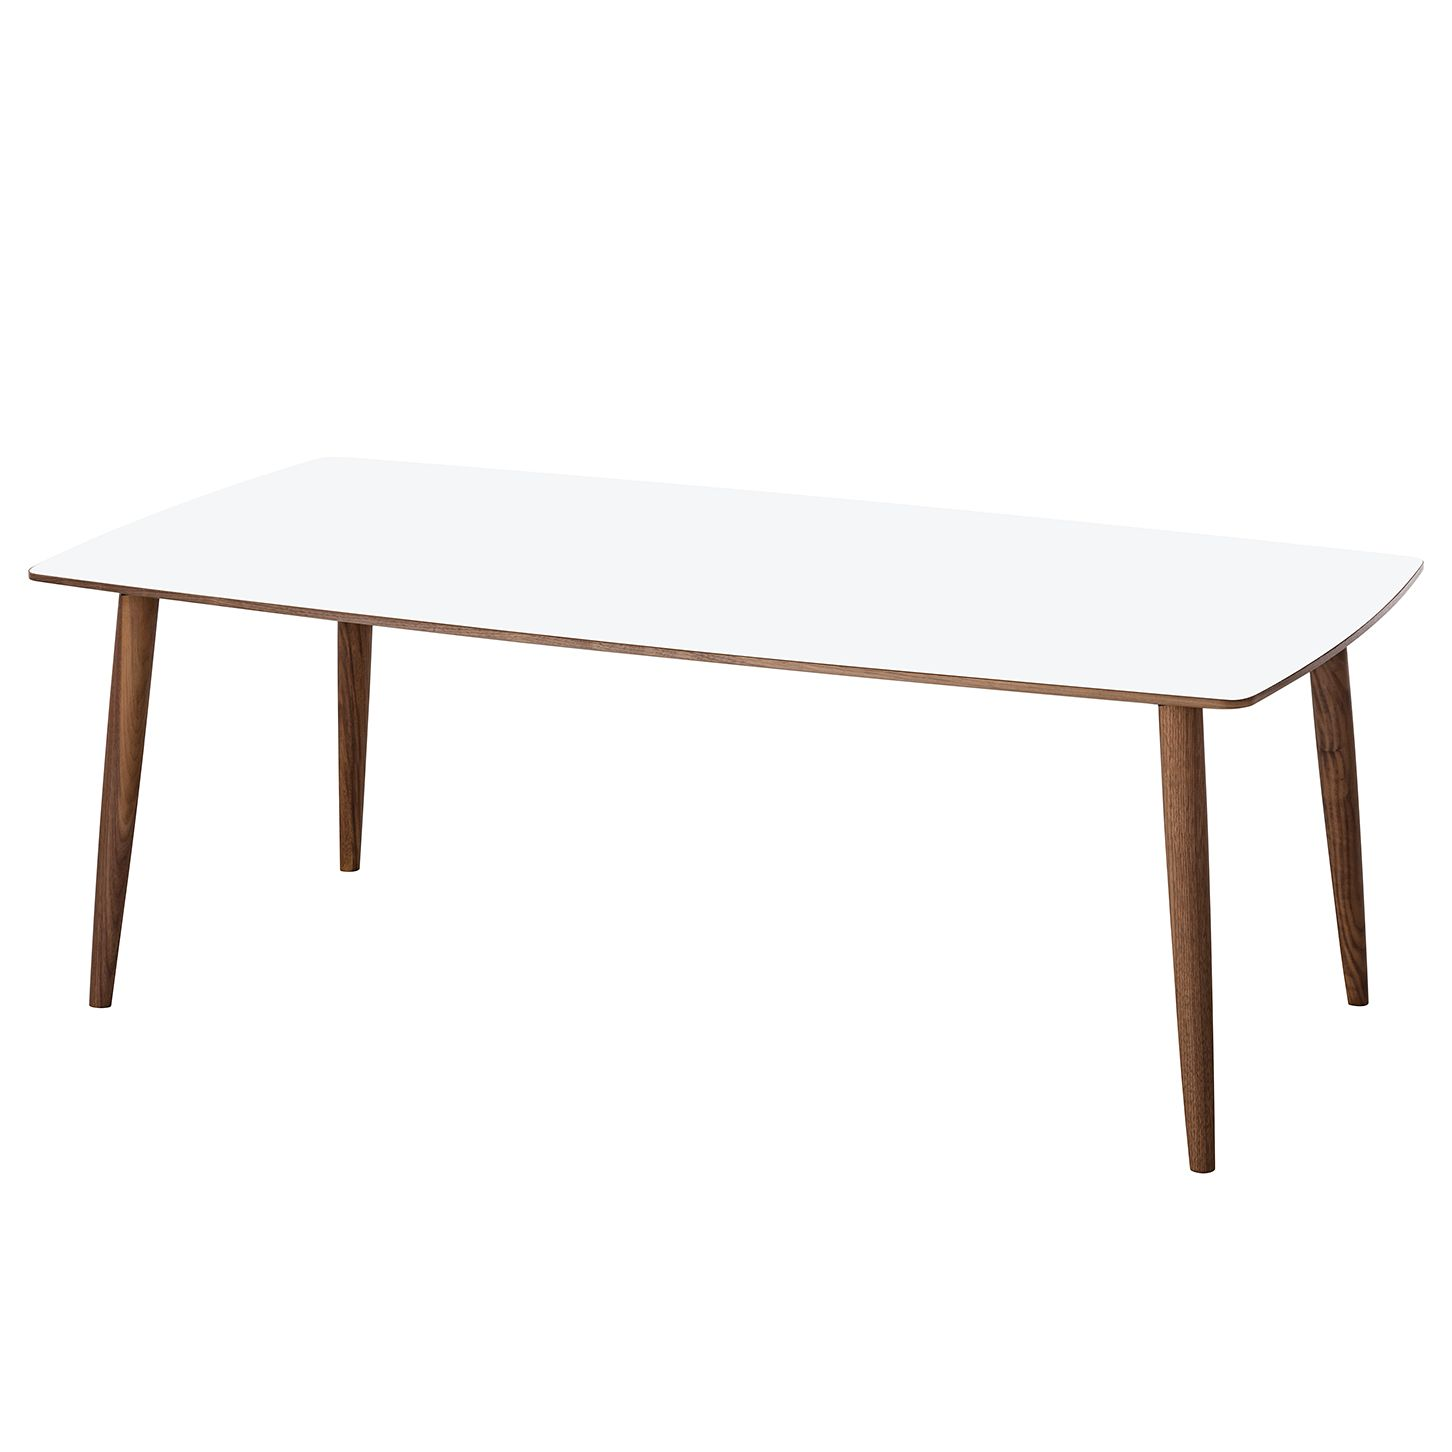 Table basse Laudal I - 48 - Blanc / Noyer, Studio Copenhagen